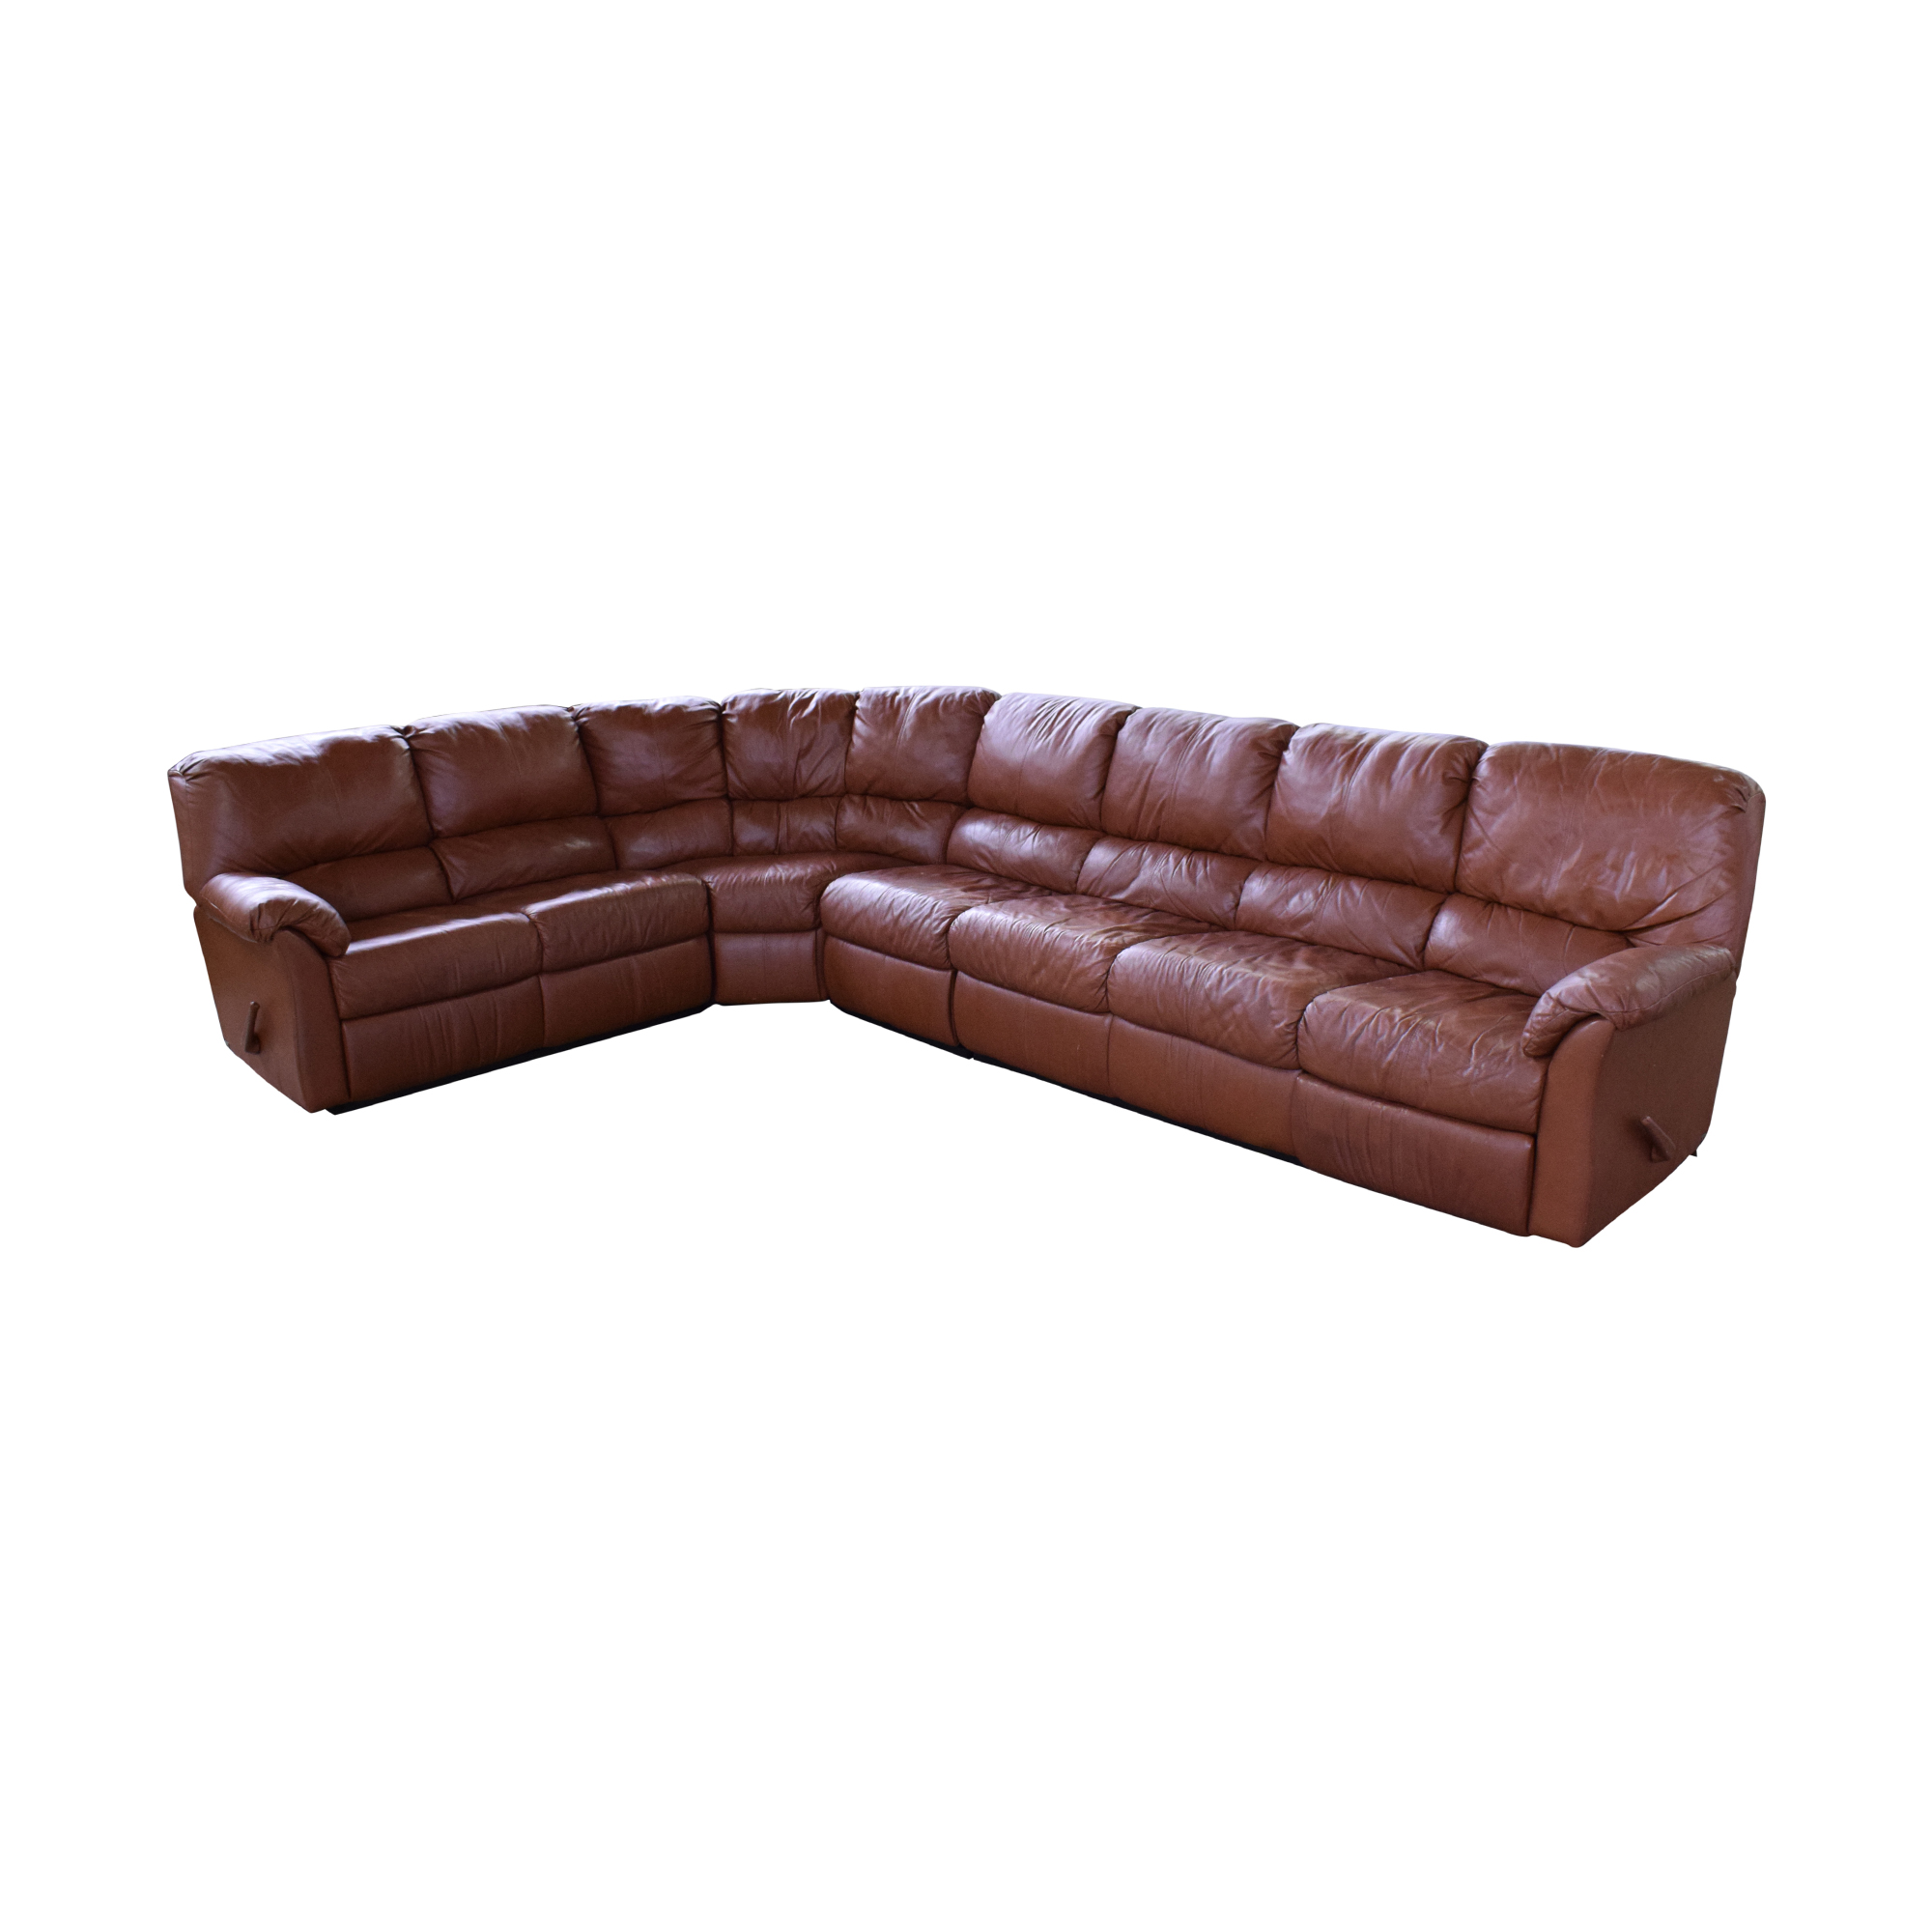 Elran Elran Reclining Curved Sectional Sofa pa